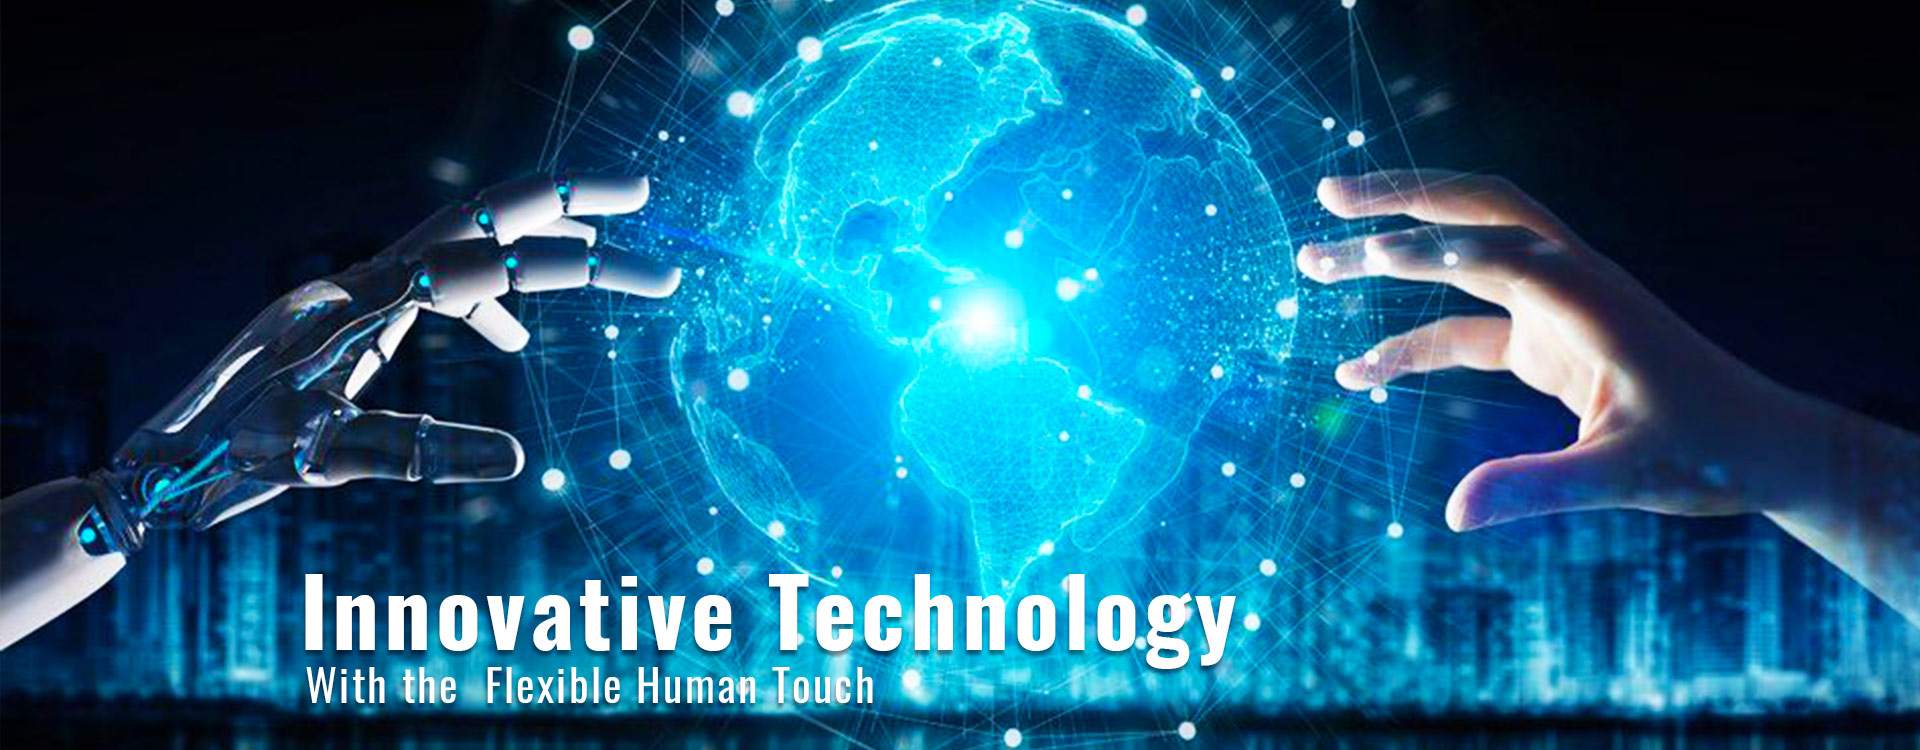 Innovative Technology With the  Flexible Human Touch.